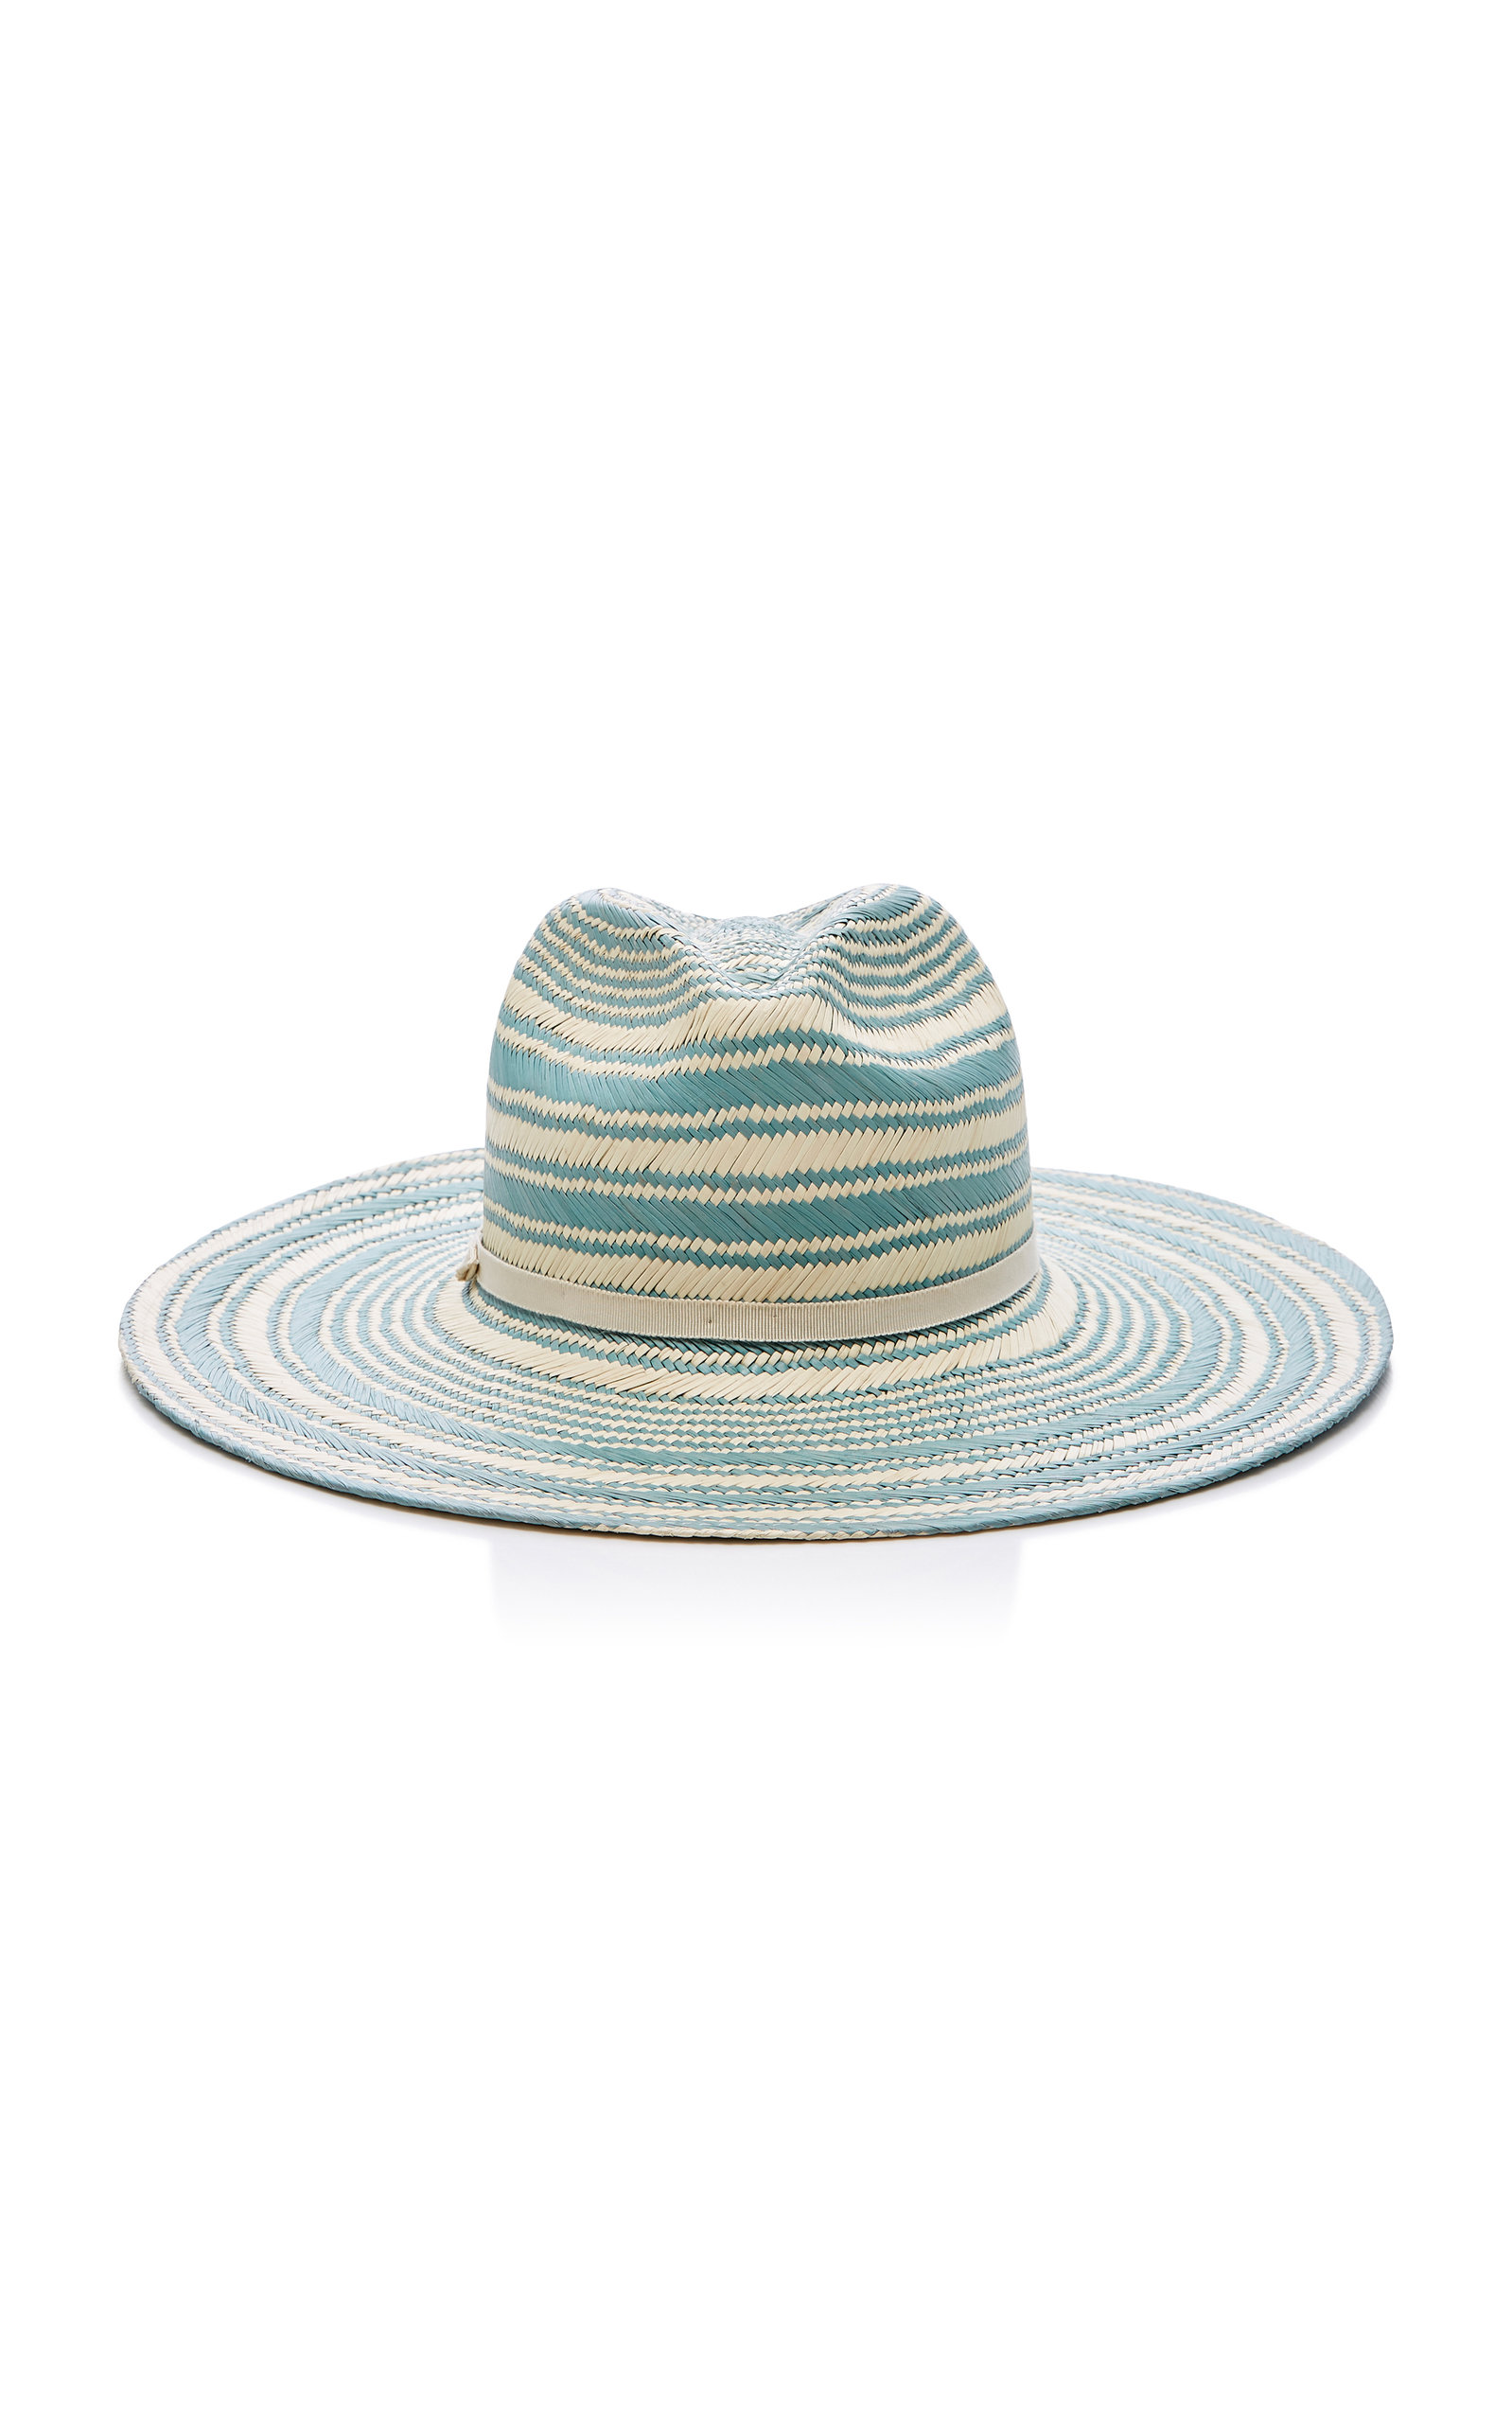 YESTADT MILLINERY SOMBA WOVEN STRAW HAT